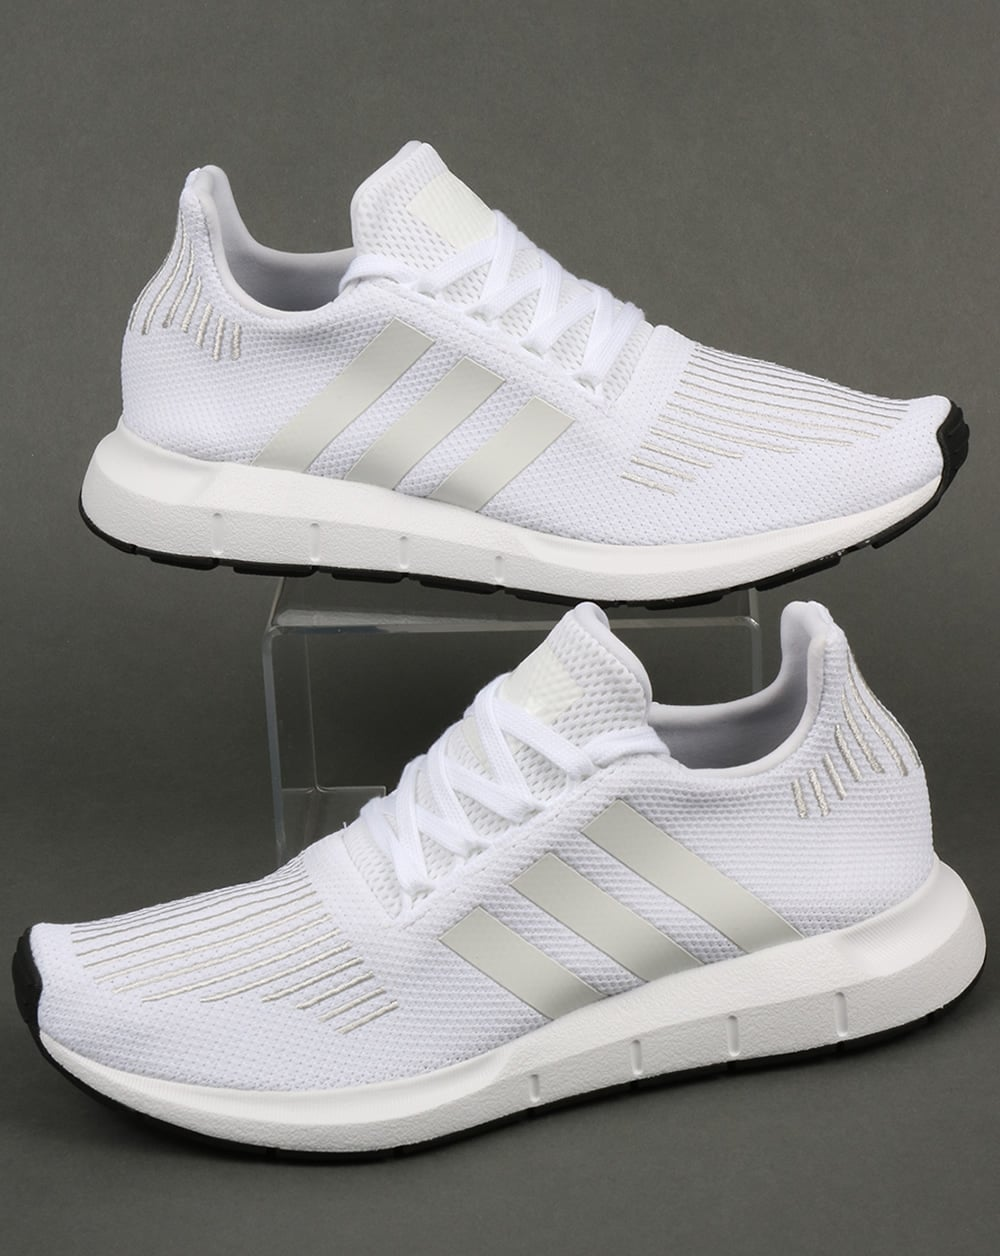 adidas swift run trainers white shoes running prime knit runners mens. Black Bedroom Furniture Sets. Home Design Ideas